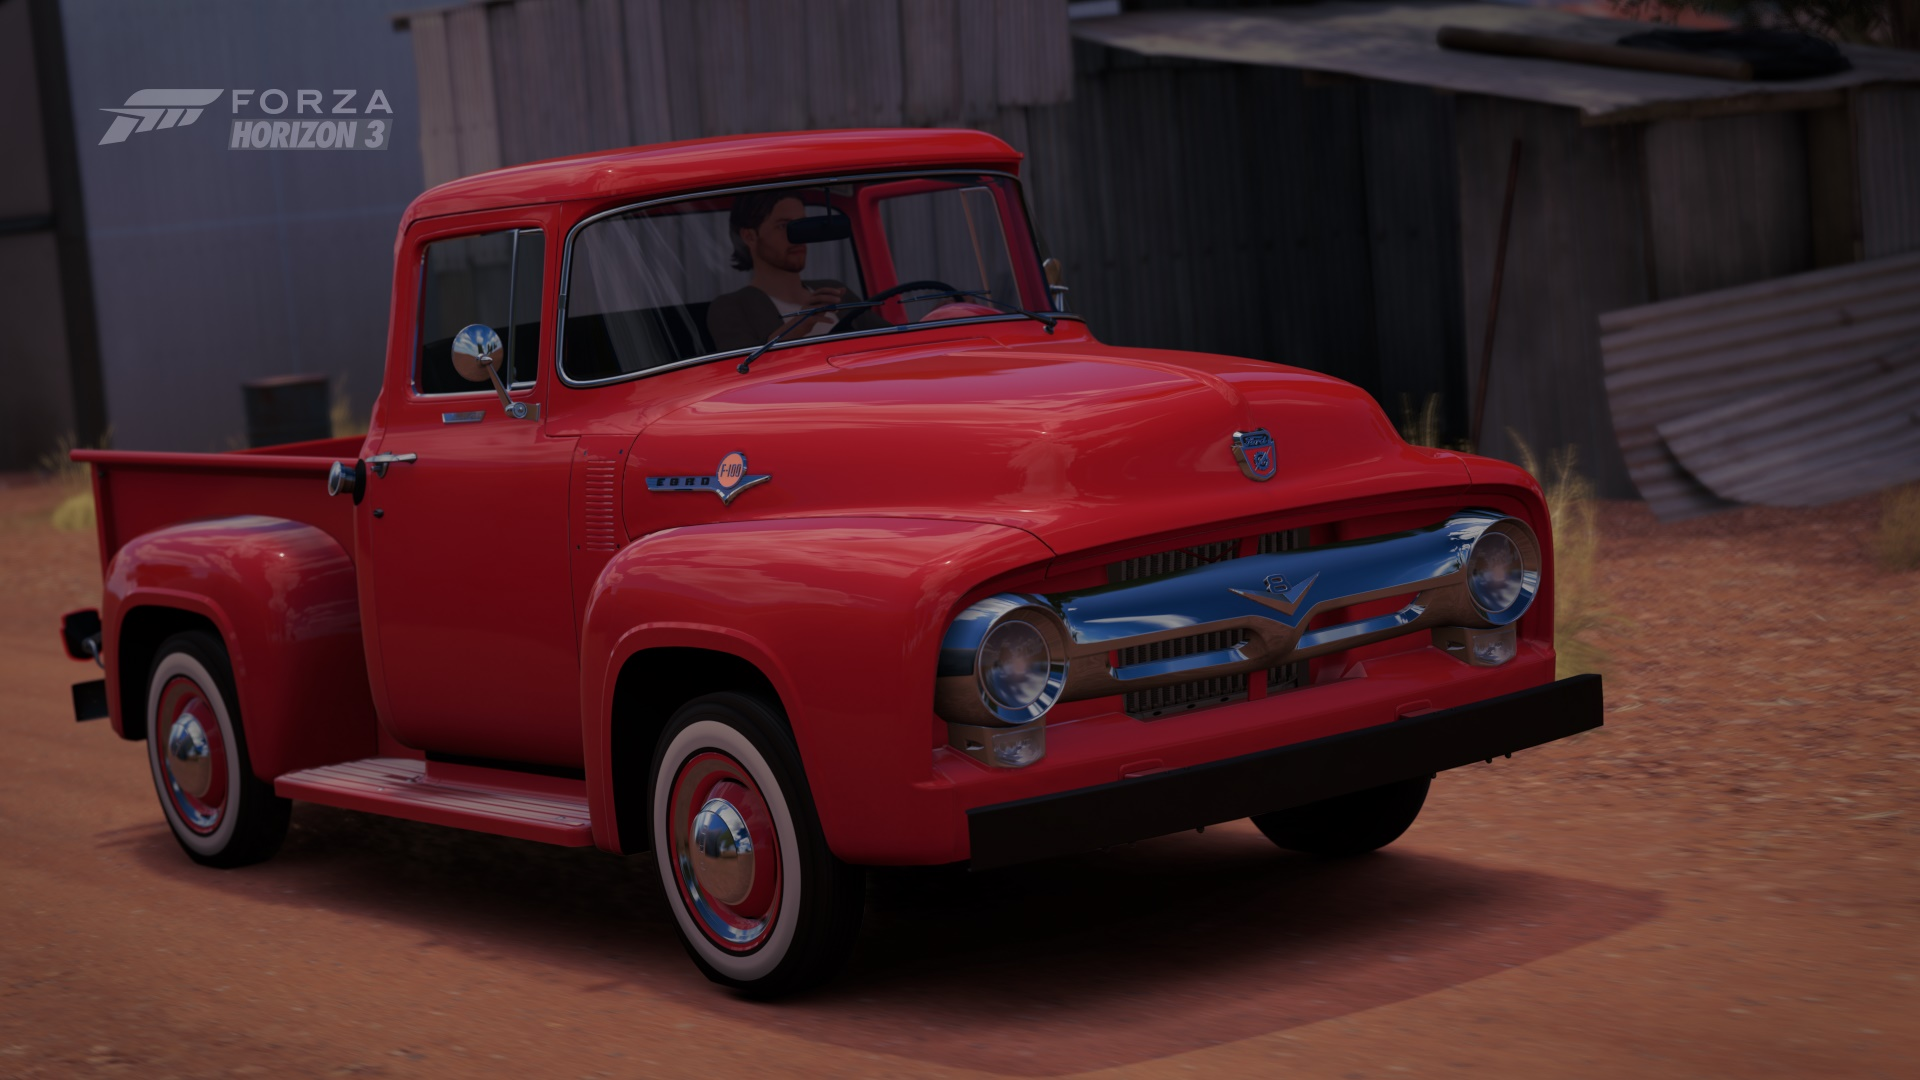 Forza Horizon 3 Cars 1955 Ford F100 Pickup Truck Gas Pedal 1956 F 100 Photo By Receptor 17